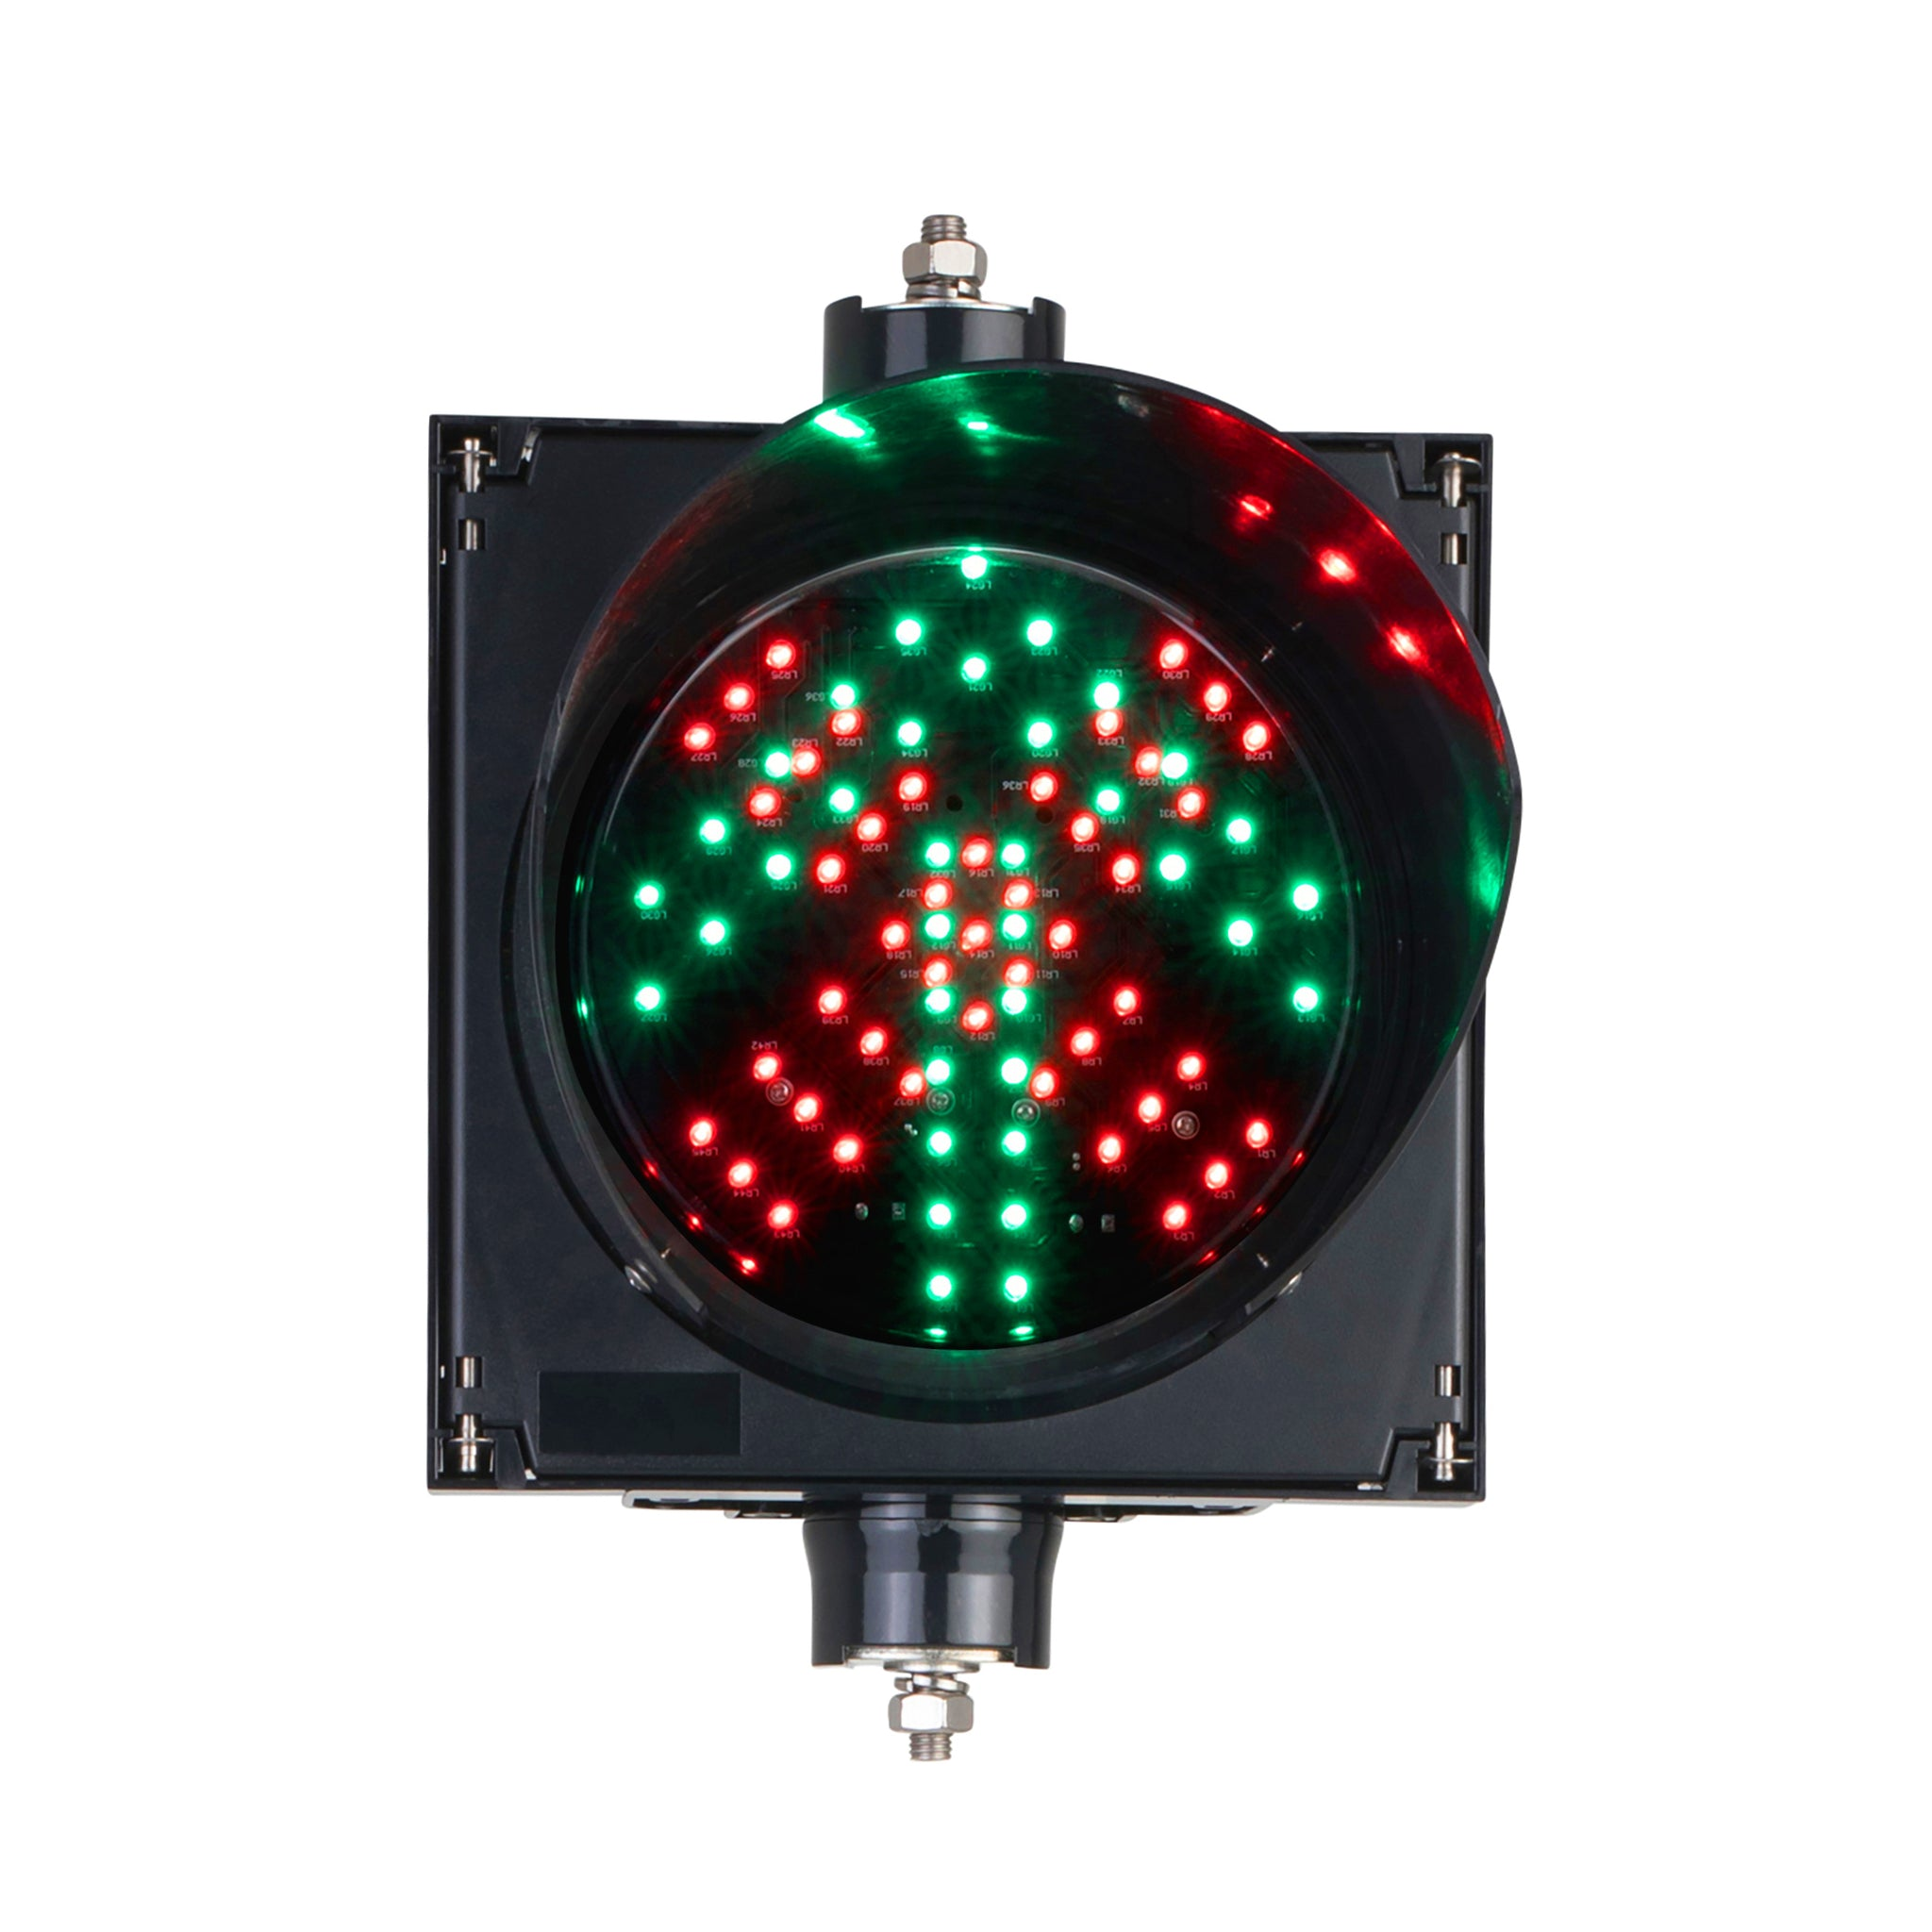 BNR Single Aspect 200mm Lane Control LED Traffic Light IP55 12-24VDC or 85-265VAC - Red X and Green Arrow Combination